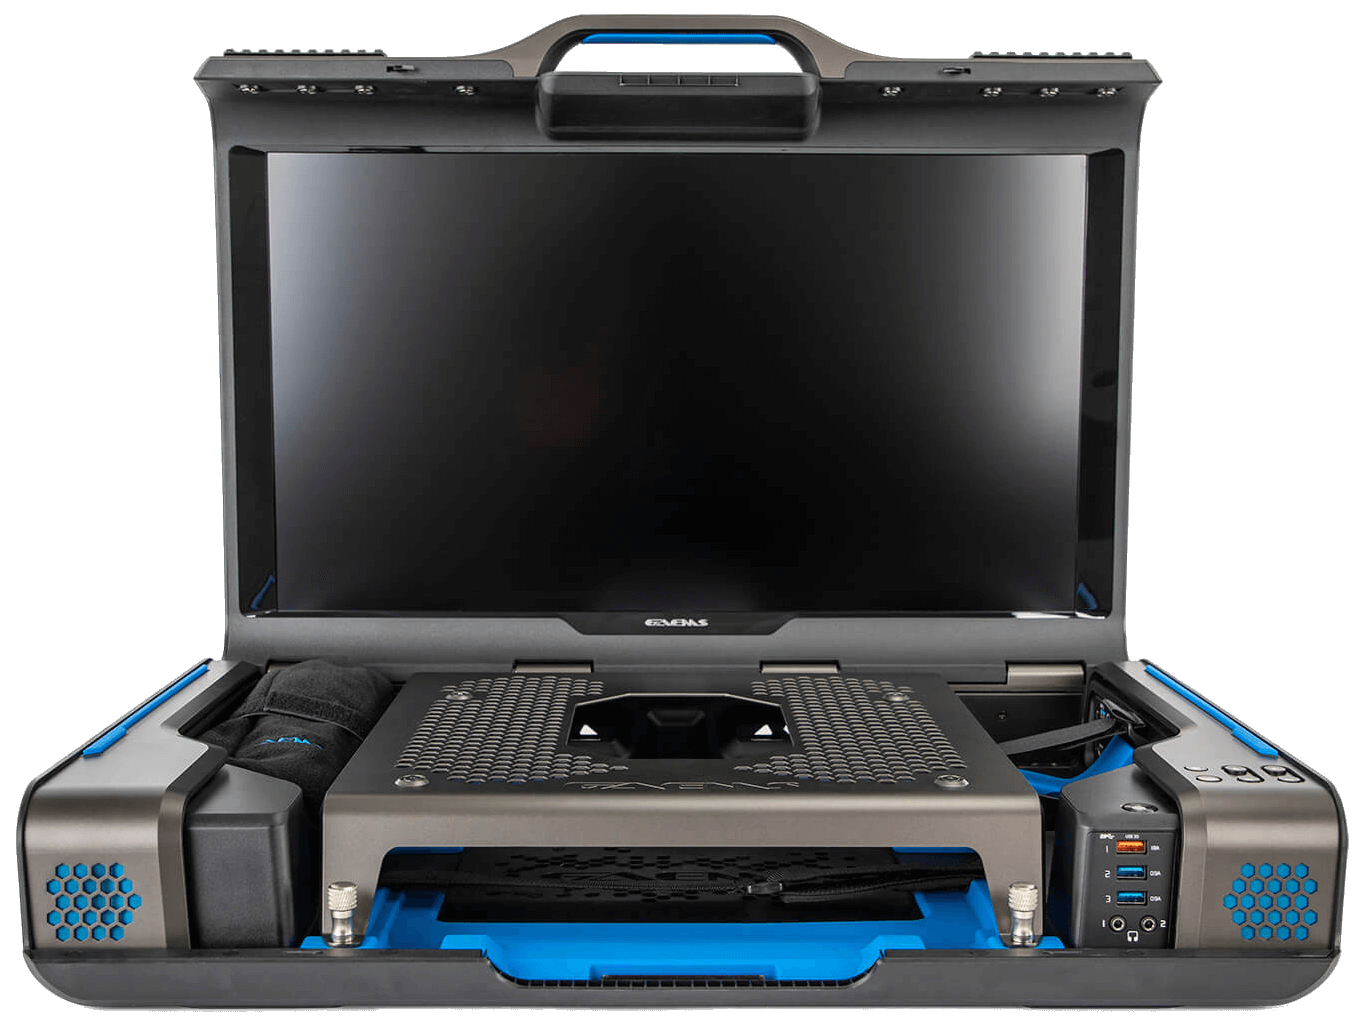 GAEMS Guardian Pro XP, Open and Facing Forward